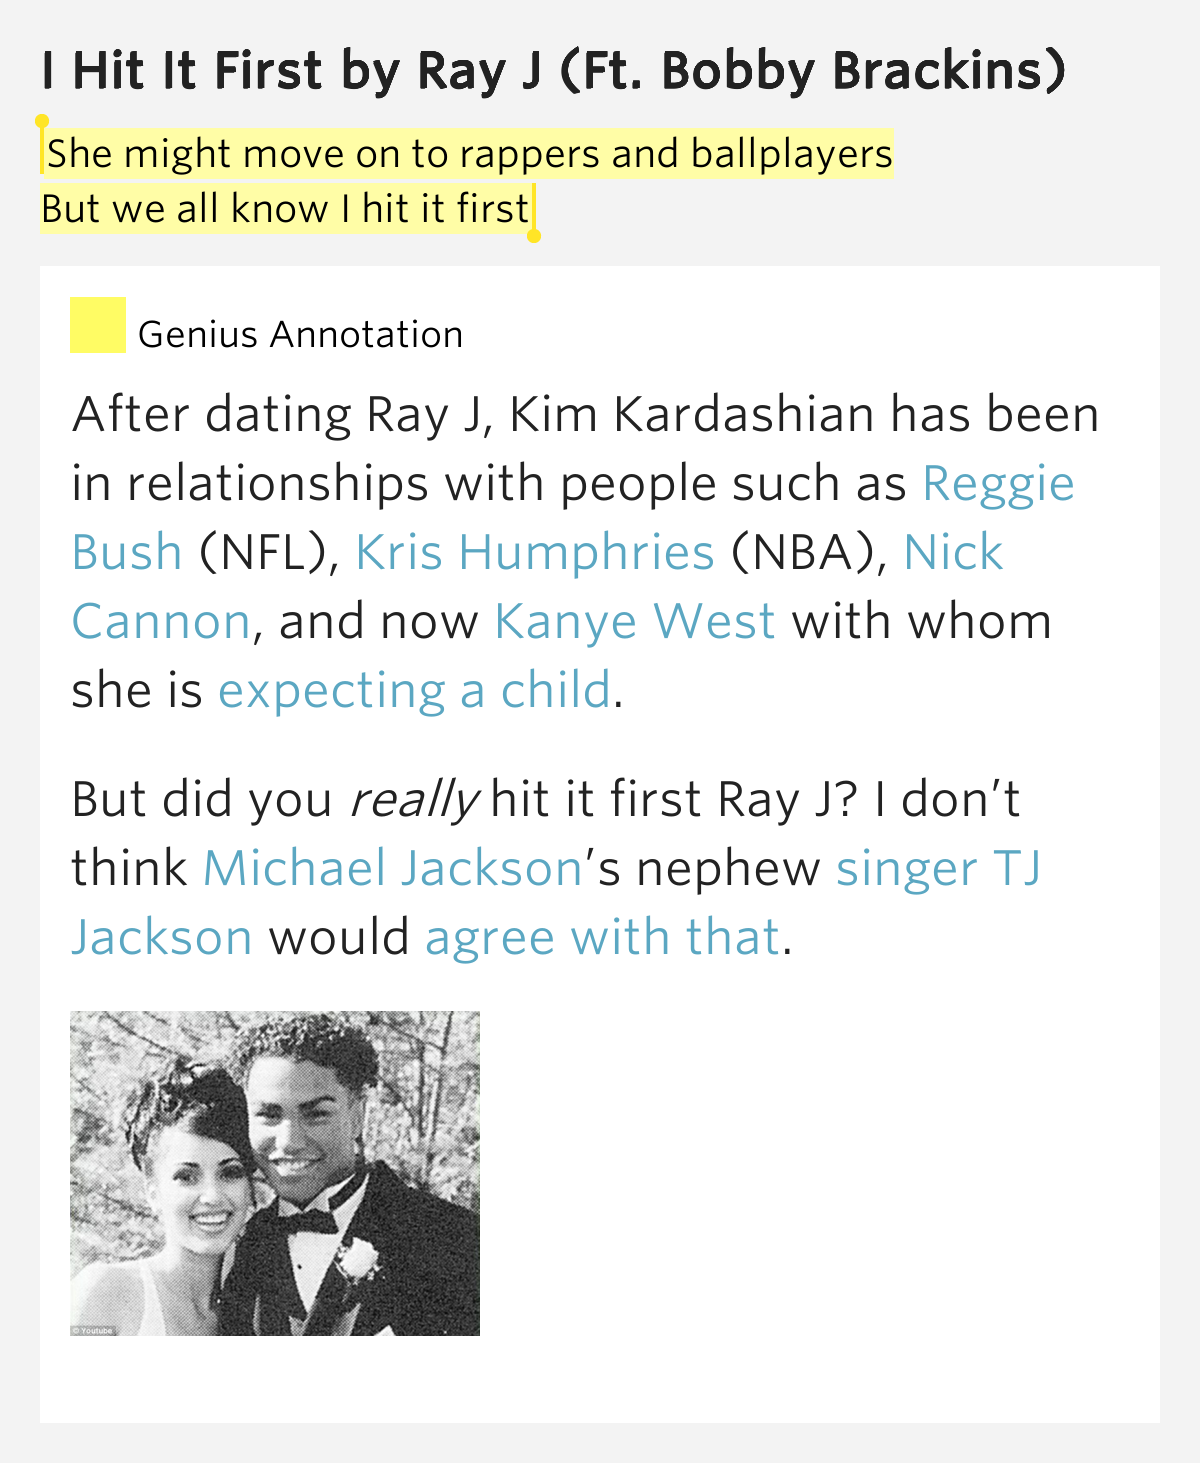 What dating sites is bobby brackins on